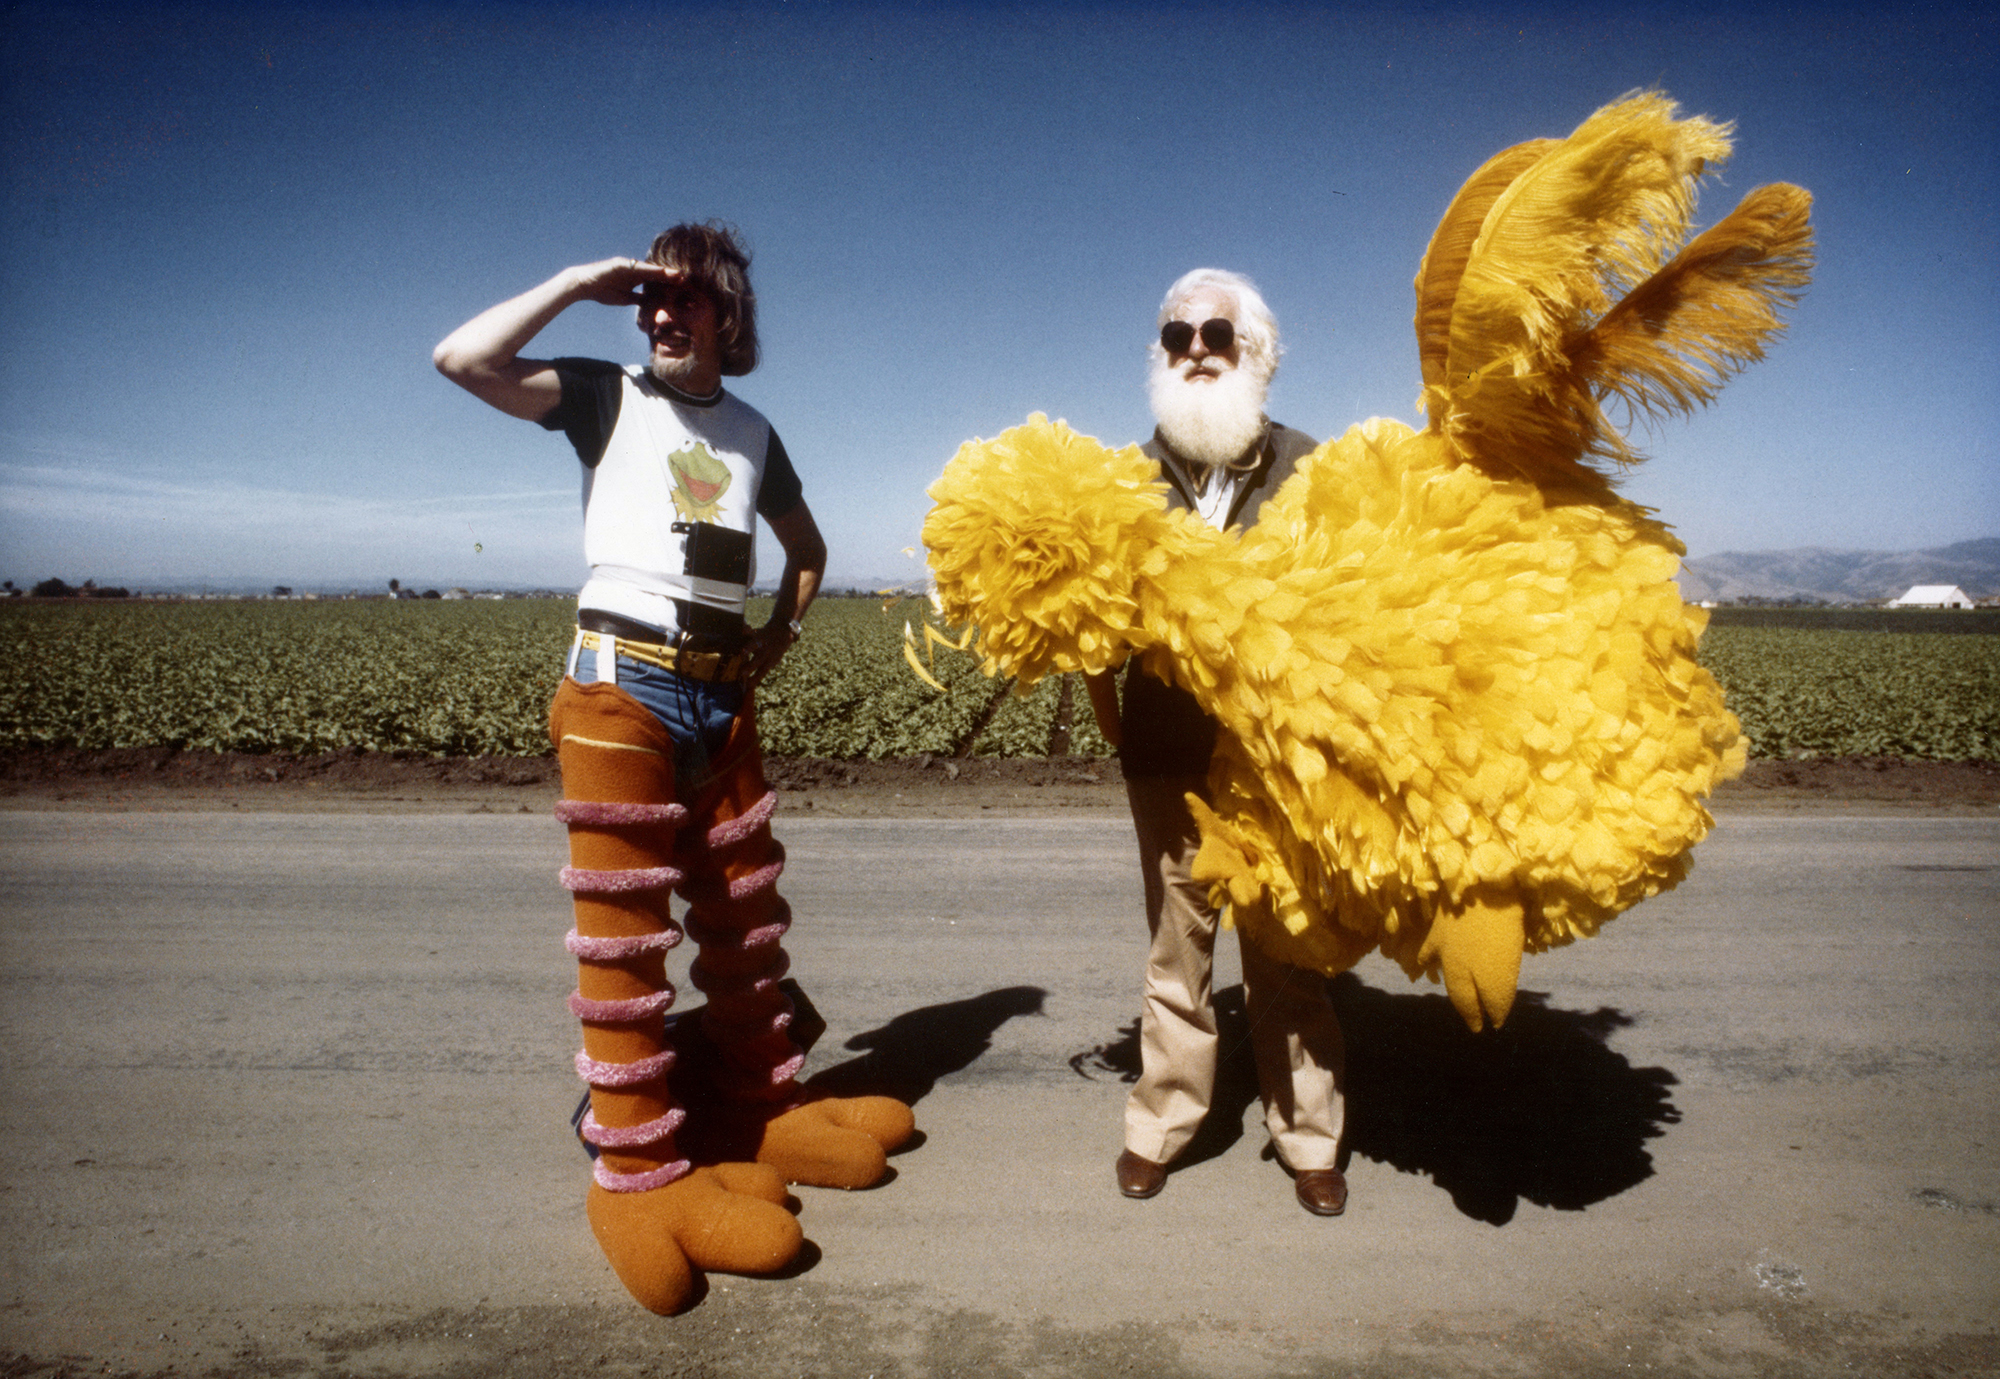 Archival photo of Caroll Spinney and Kermit Love on the set of a Sesame Street production. Photo courtesy of Debra Spinney.